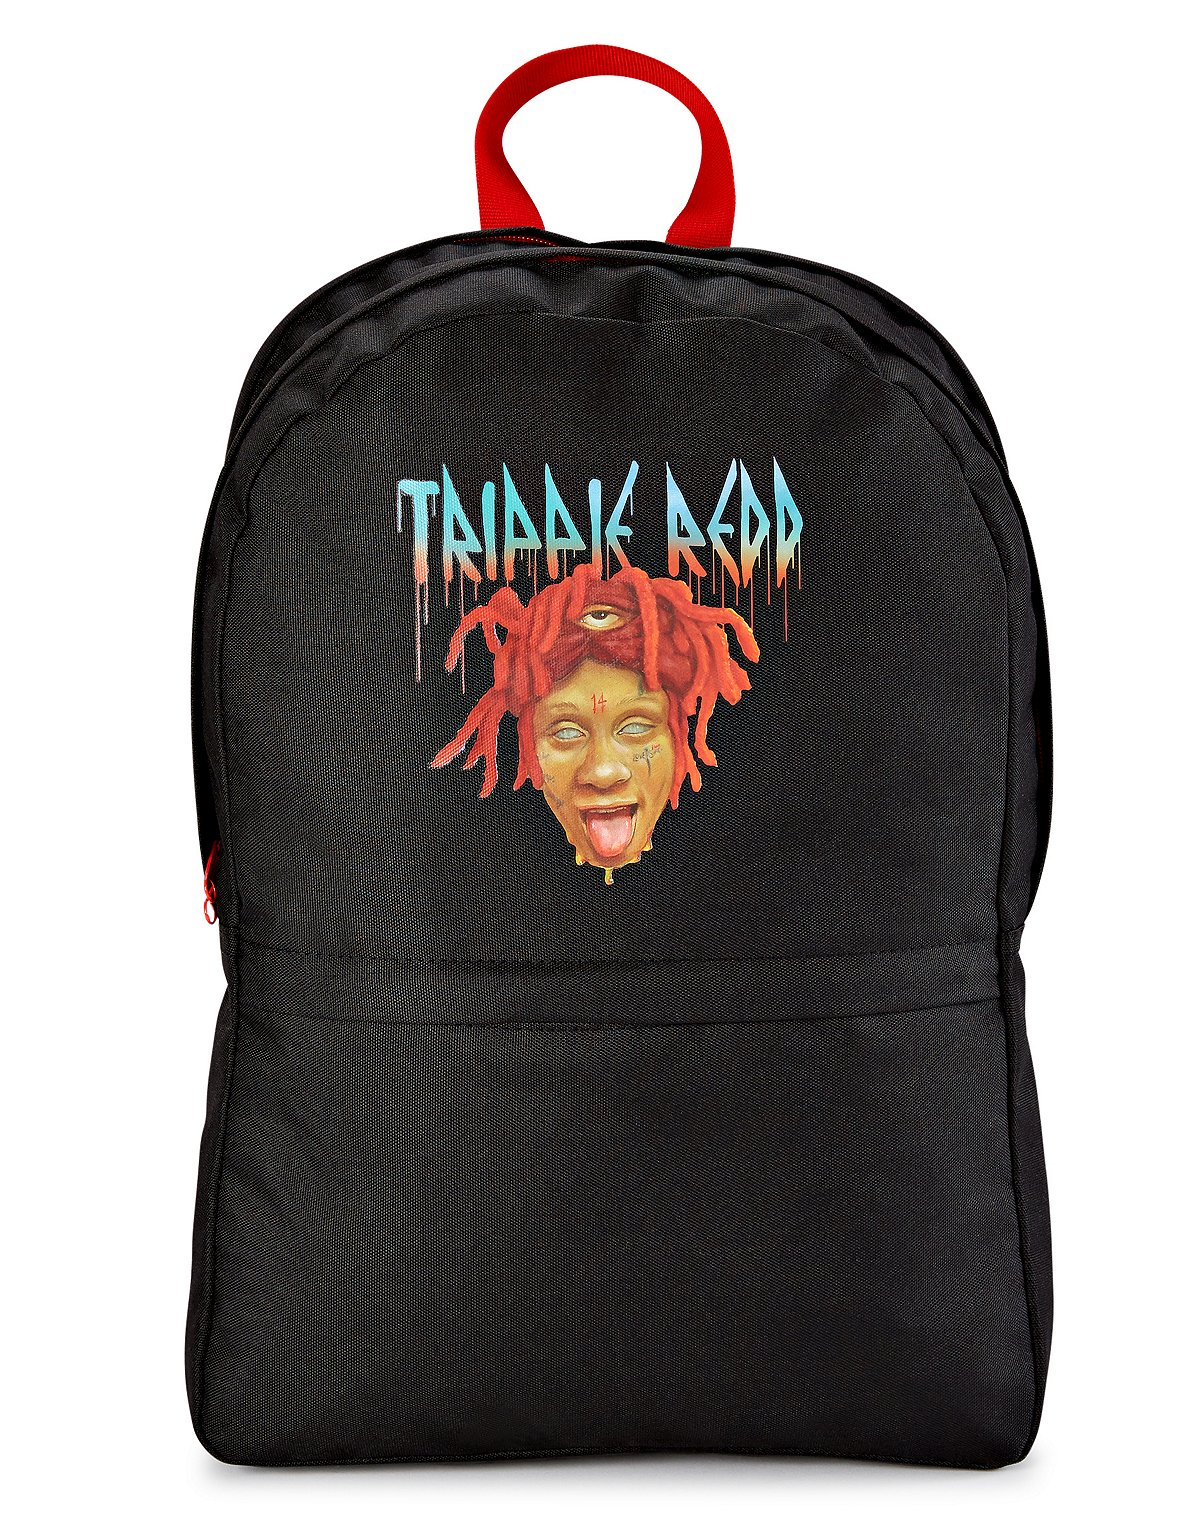 Trippie Redd Backpack